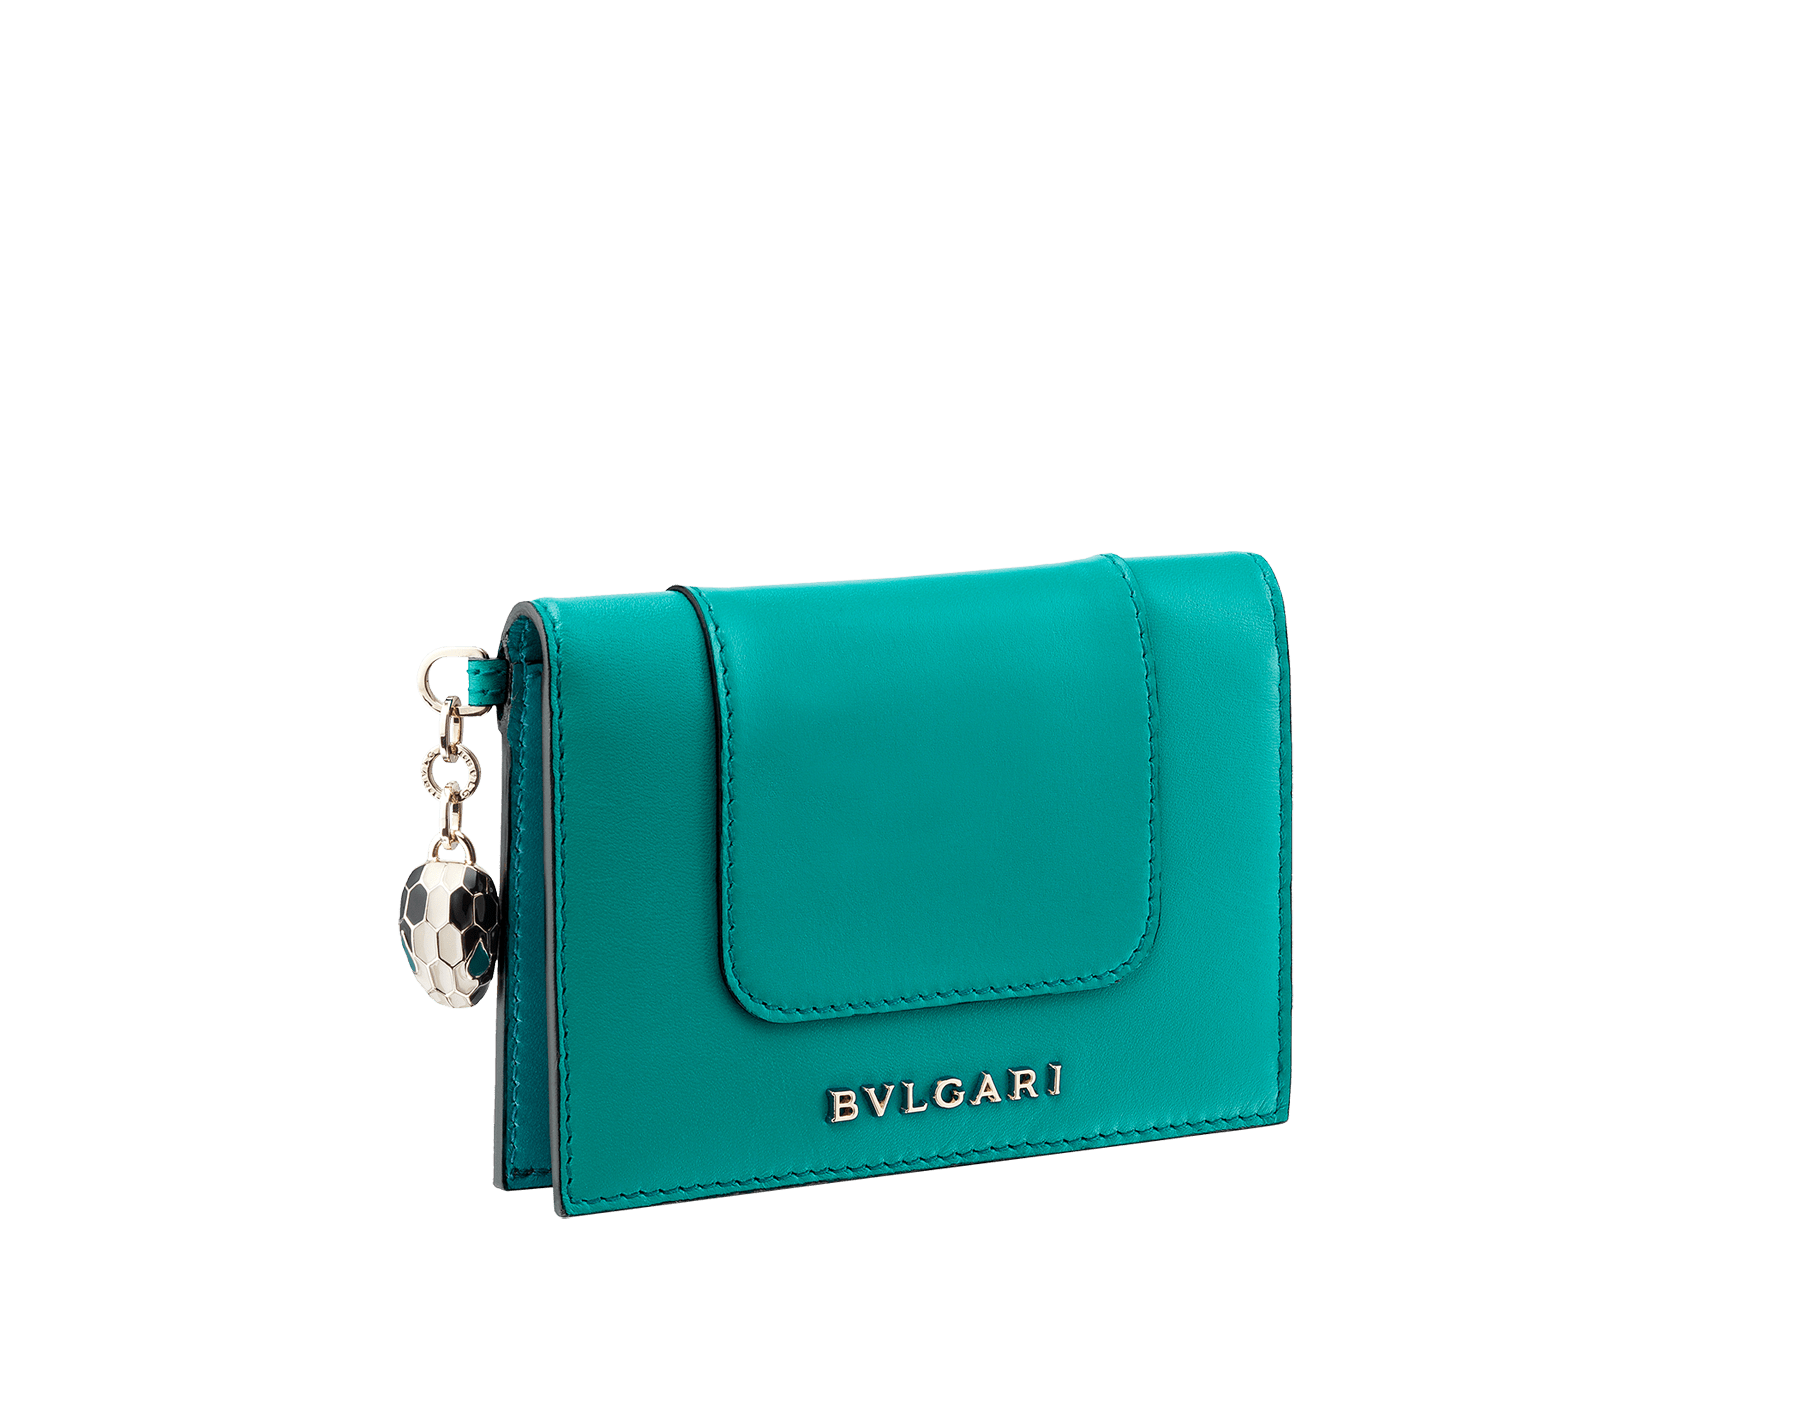 Serpenti Forever folded credit card holder in tropical tourquoise calf leather. Iconic snakehead charm in black and white enamel, with green malachite enamel eyes. 288015 image 1